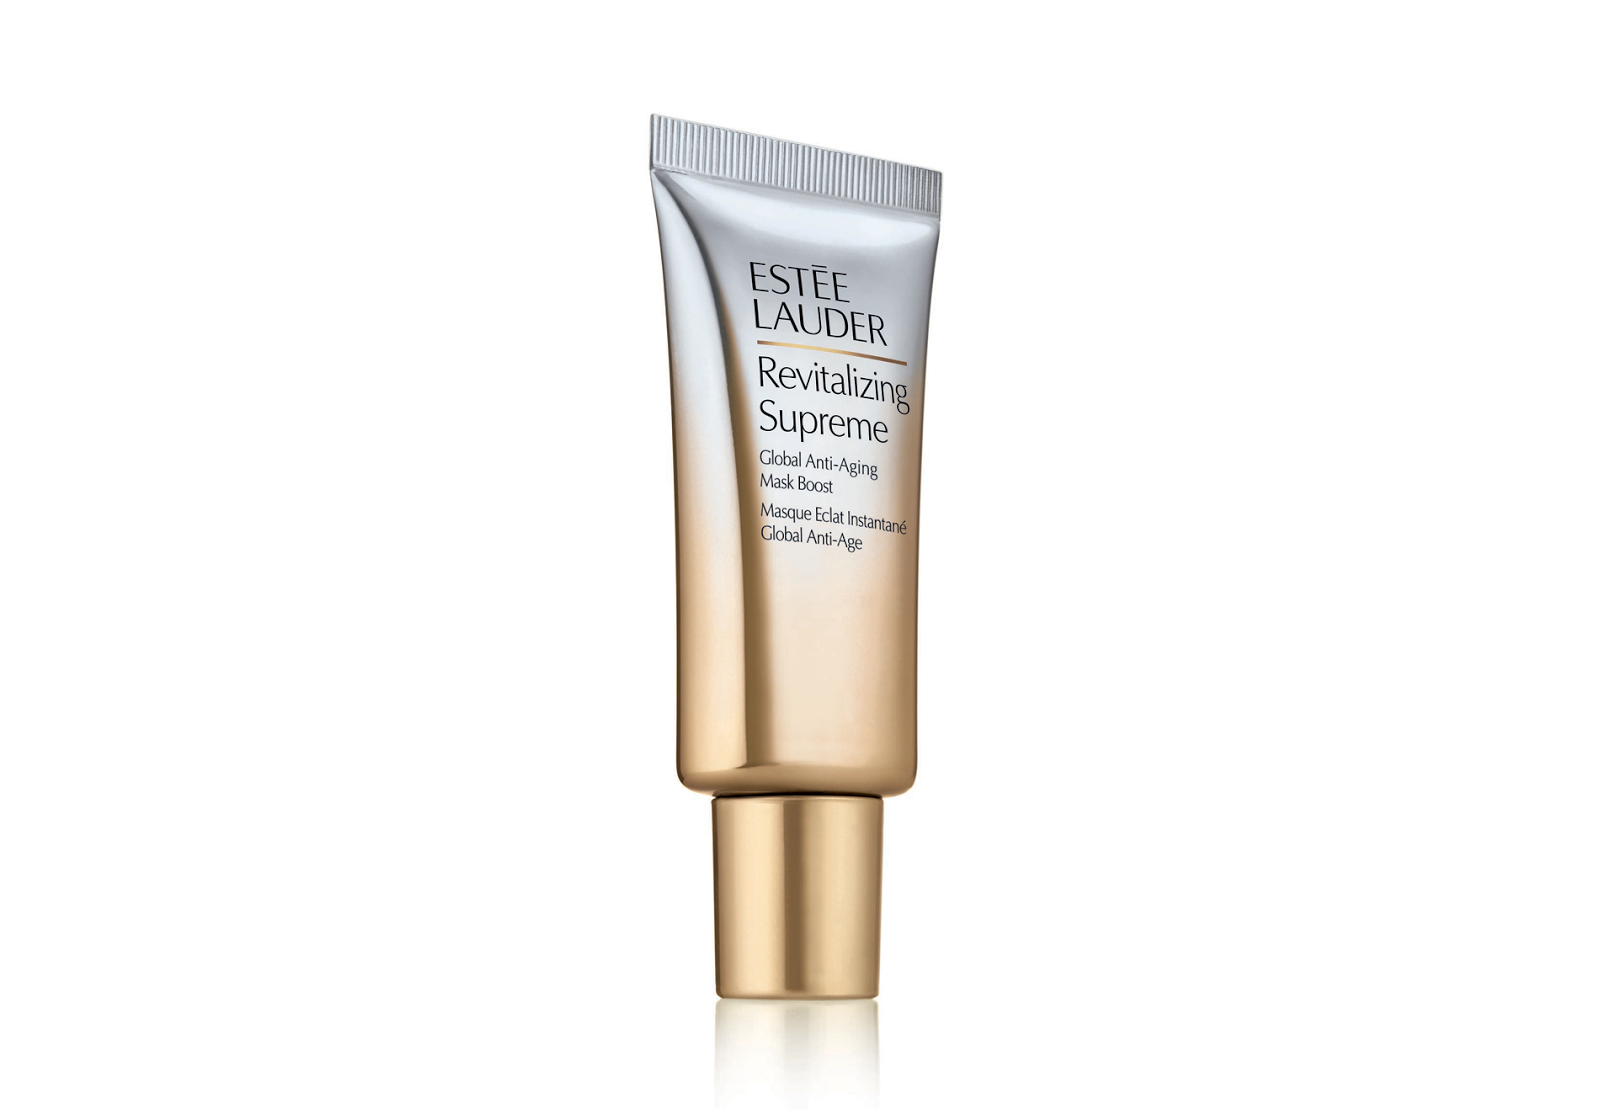 estee lauder mask revitalizing supreme